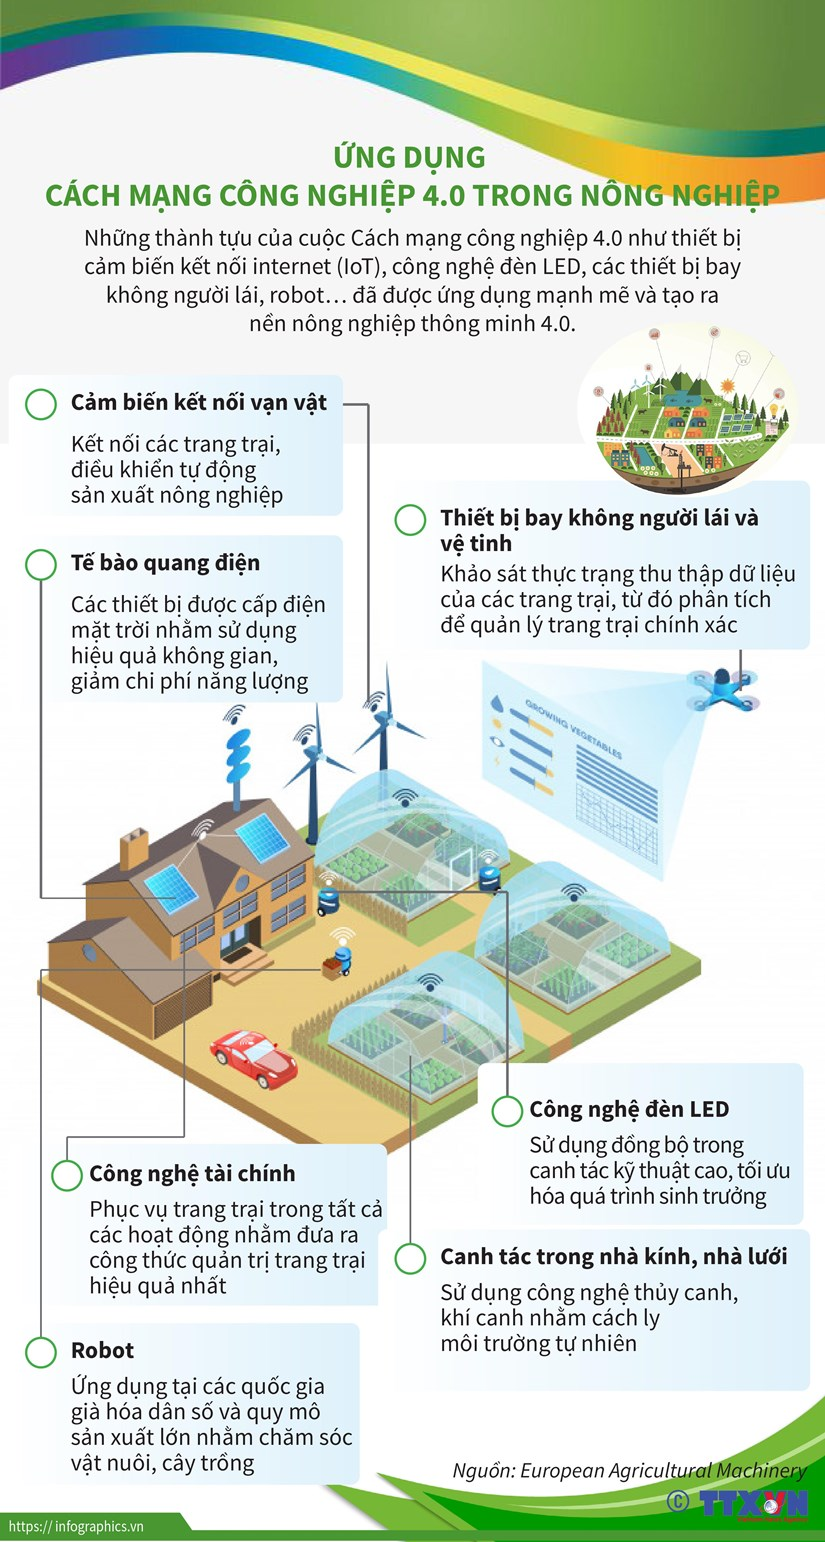 [Infographics] Ung dung Cach mang cong nghiep 4.0 trong nong nghiep hinh anh 1